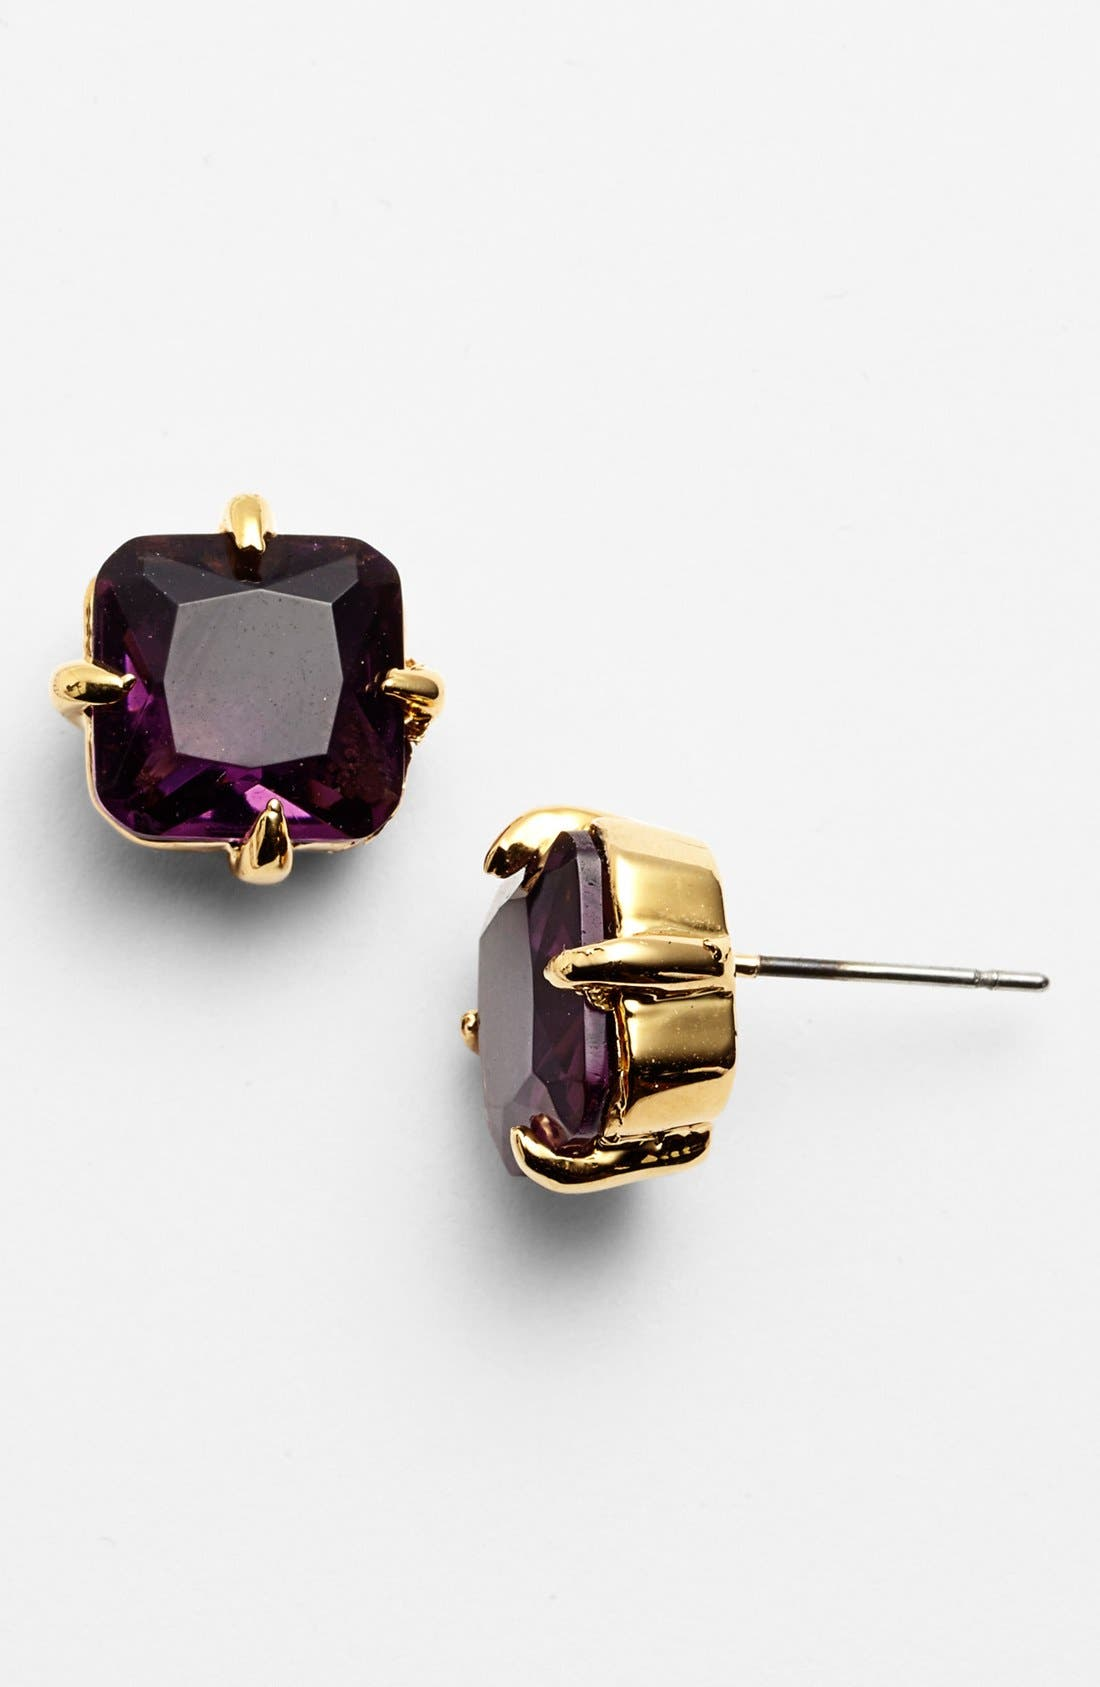 Alternate Image 1 Selected - Vince Camuto 'Jewel Purpose' Square Stone Stud Earrings